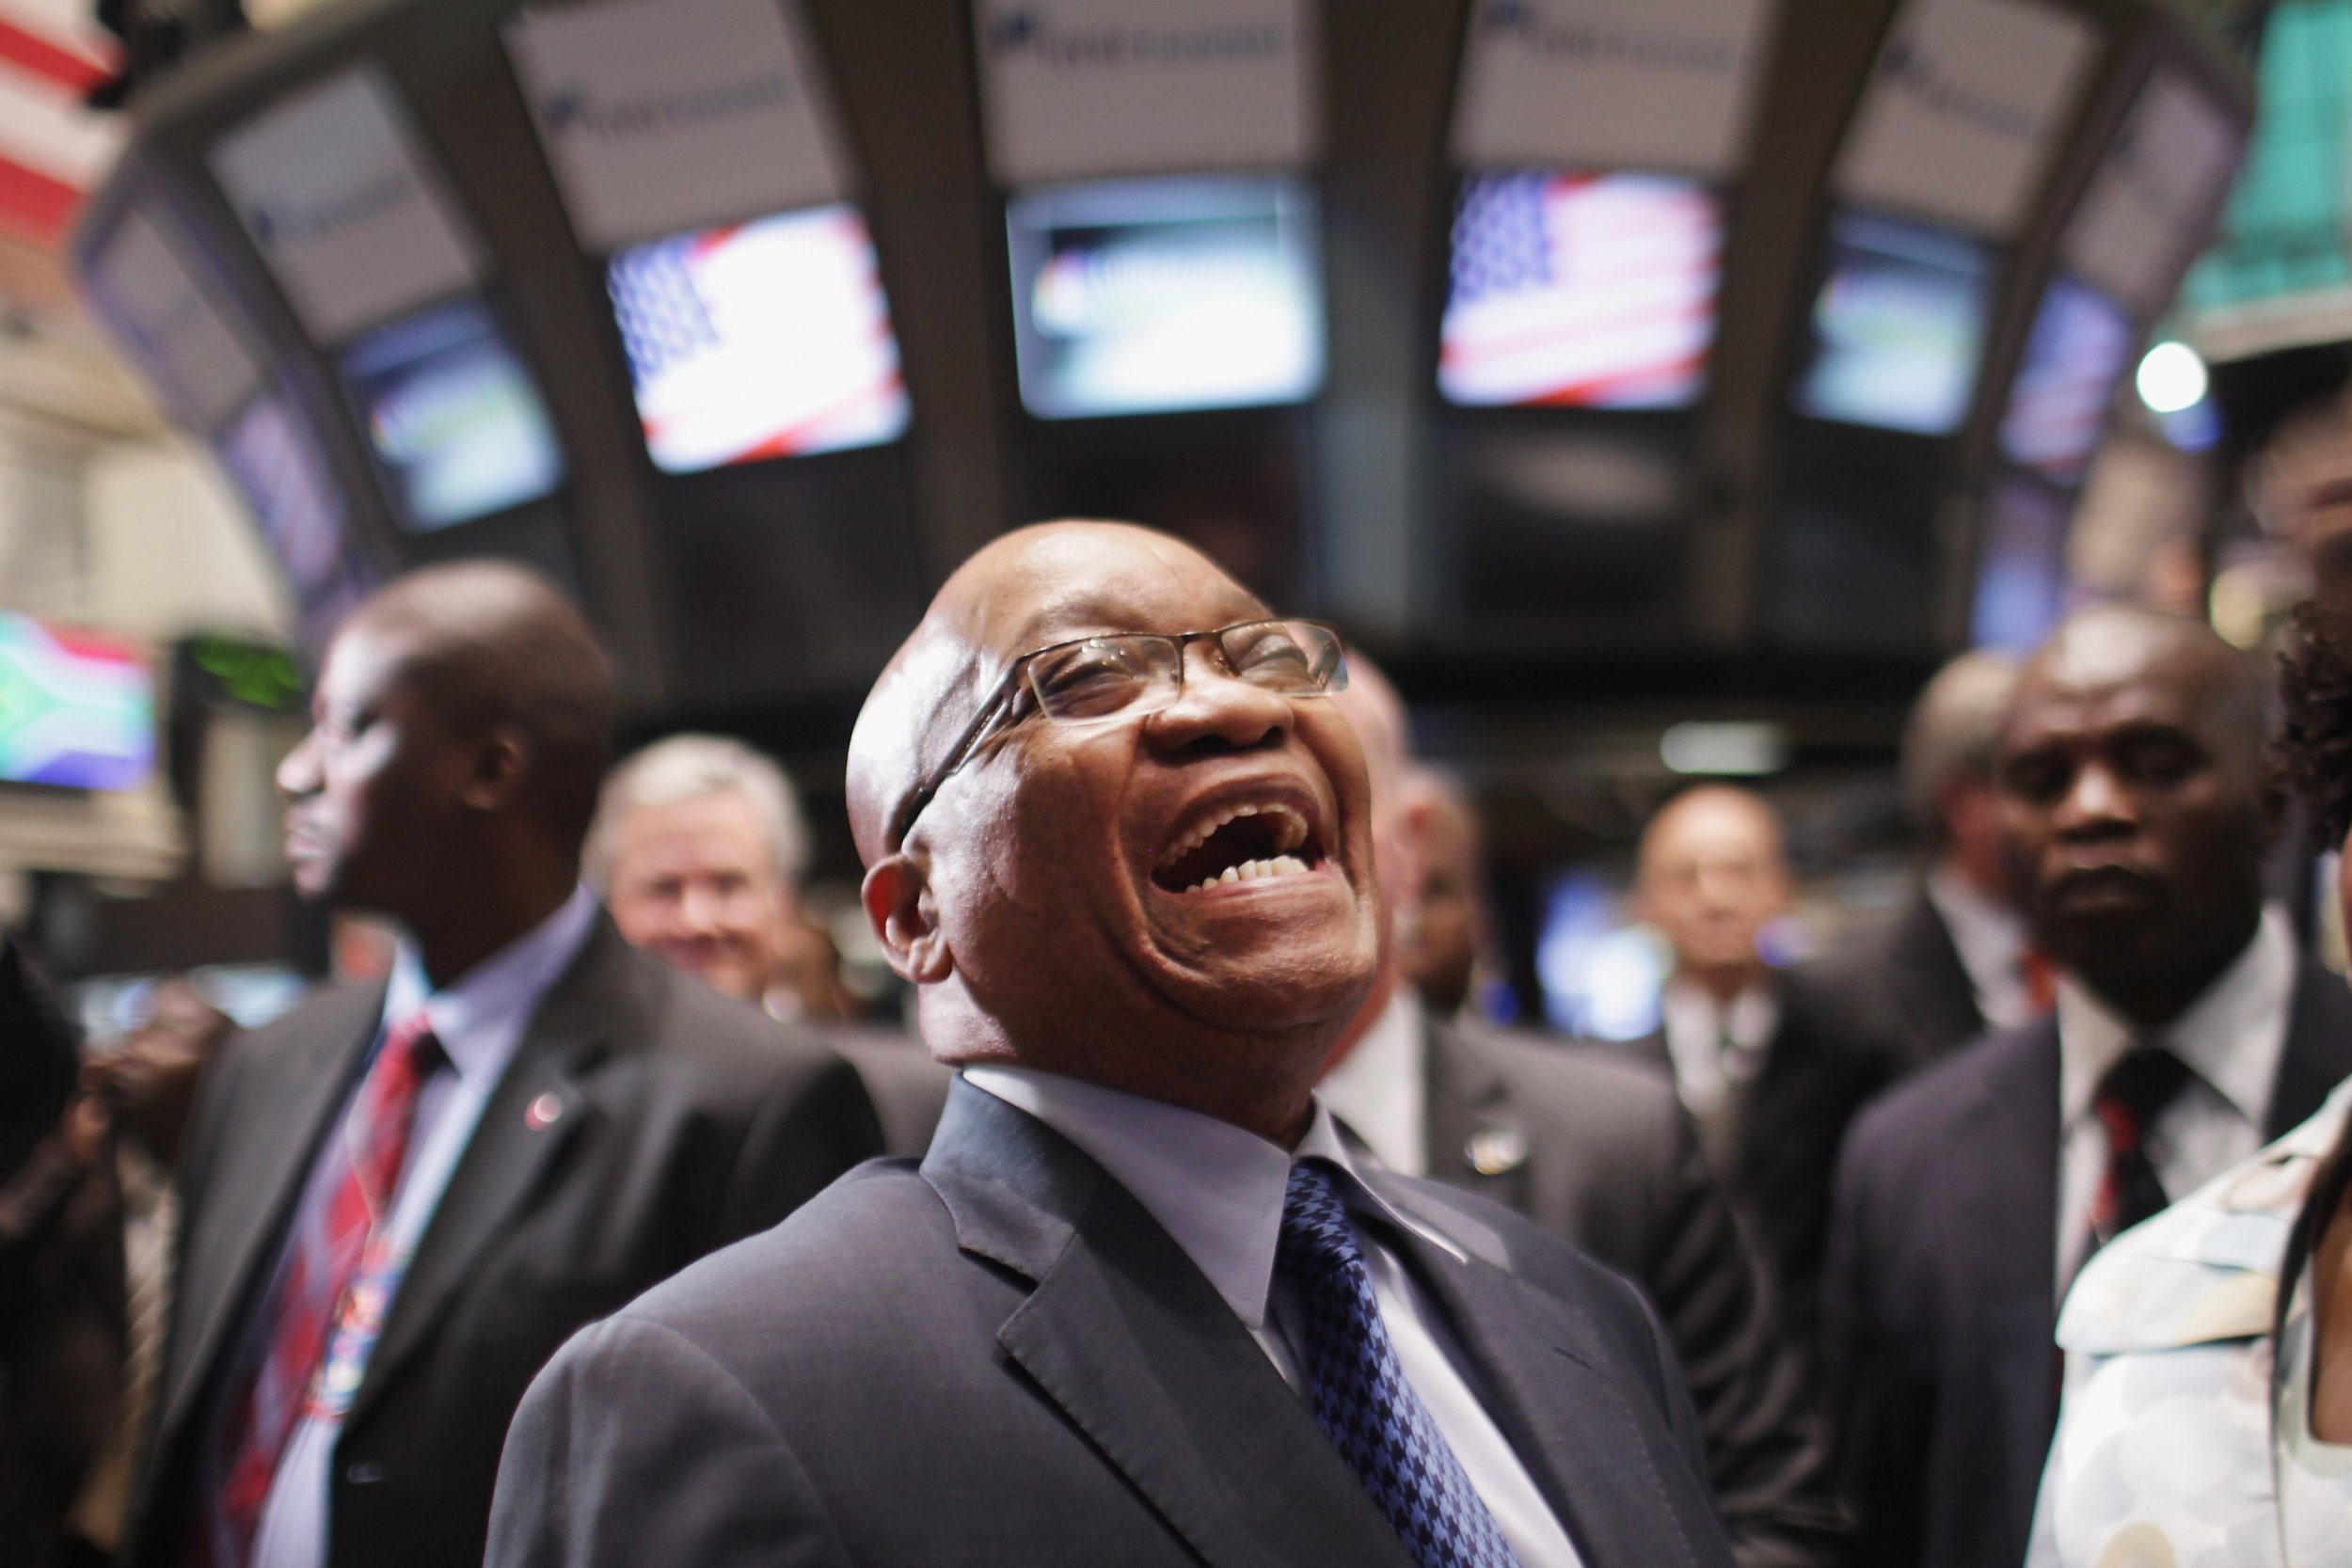 South African President Jacob Zuma visits the New York Stock Exchange.